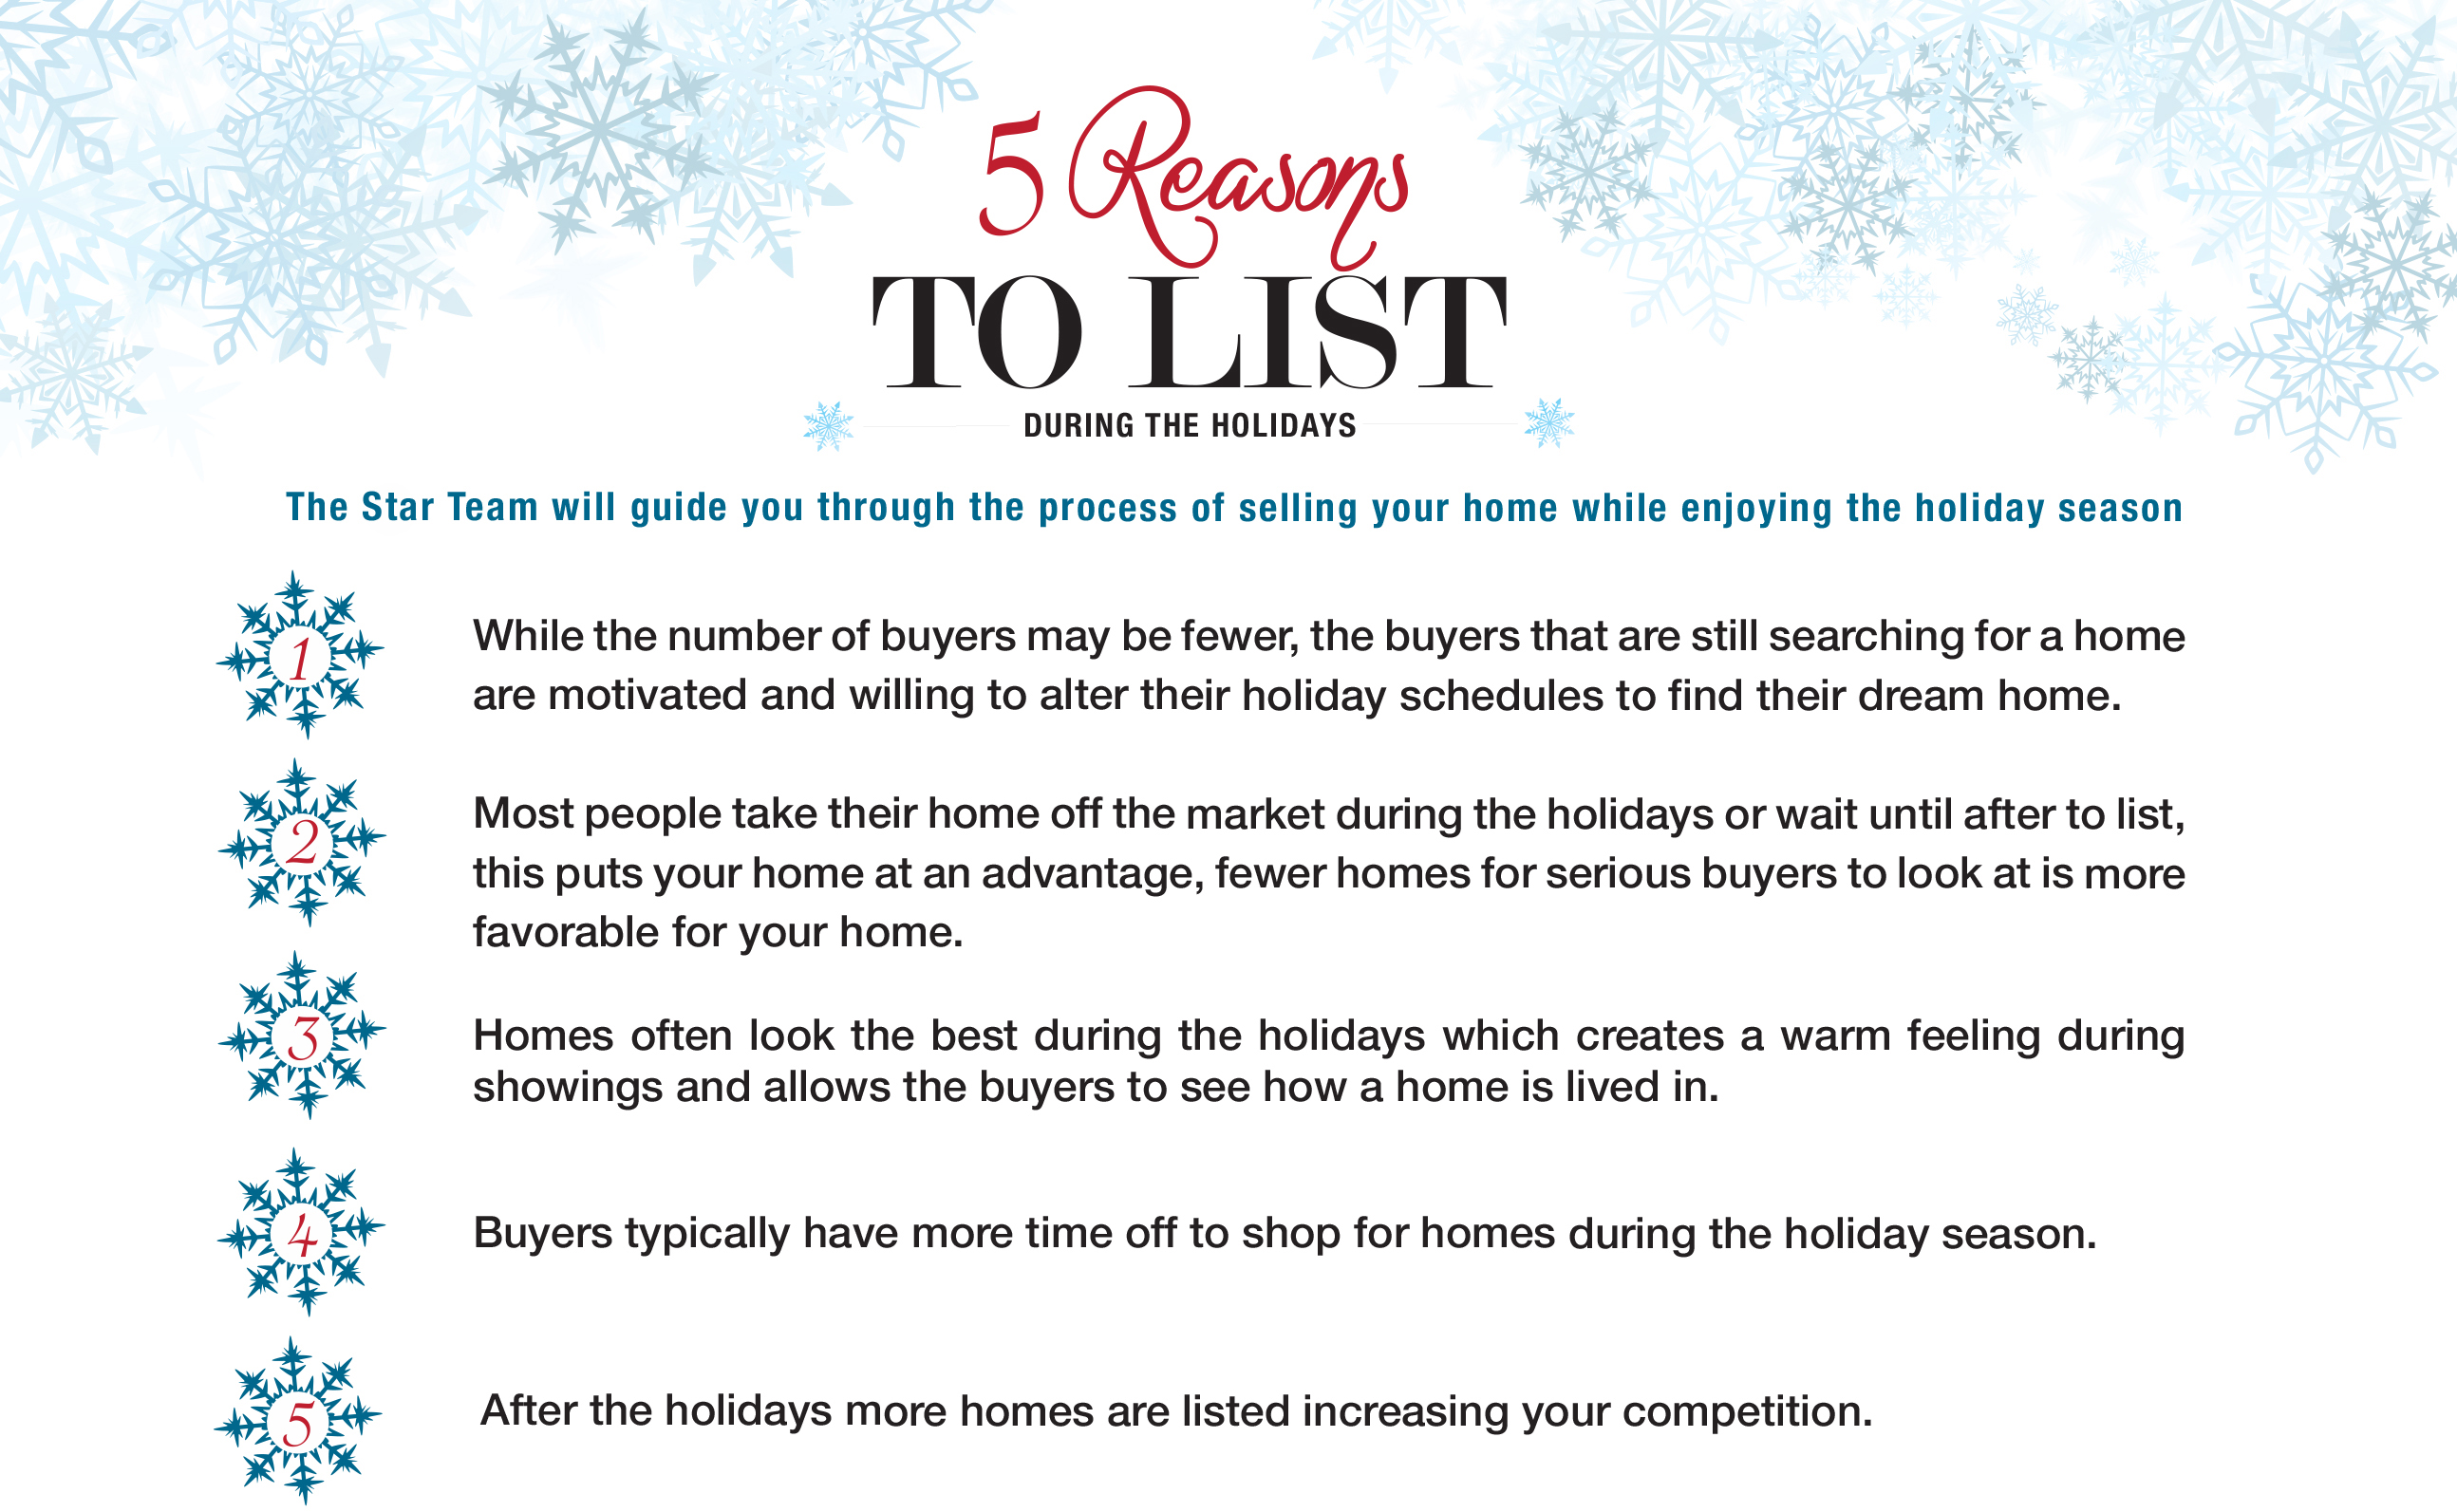 top 5 reasons to list your home during the holidays